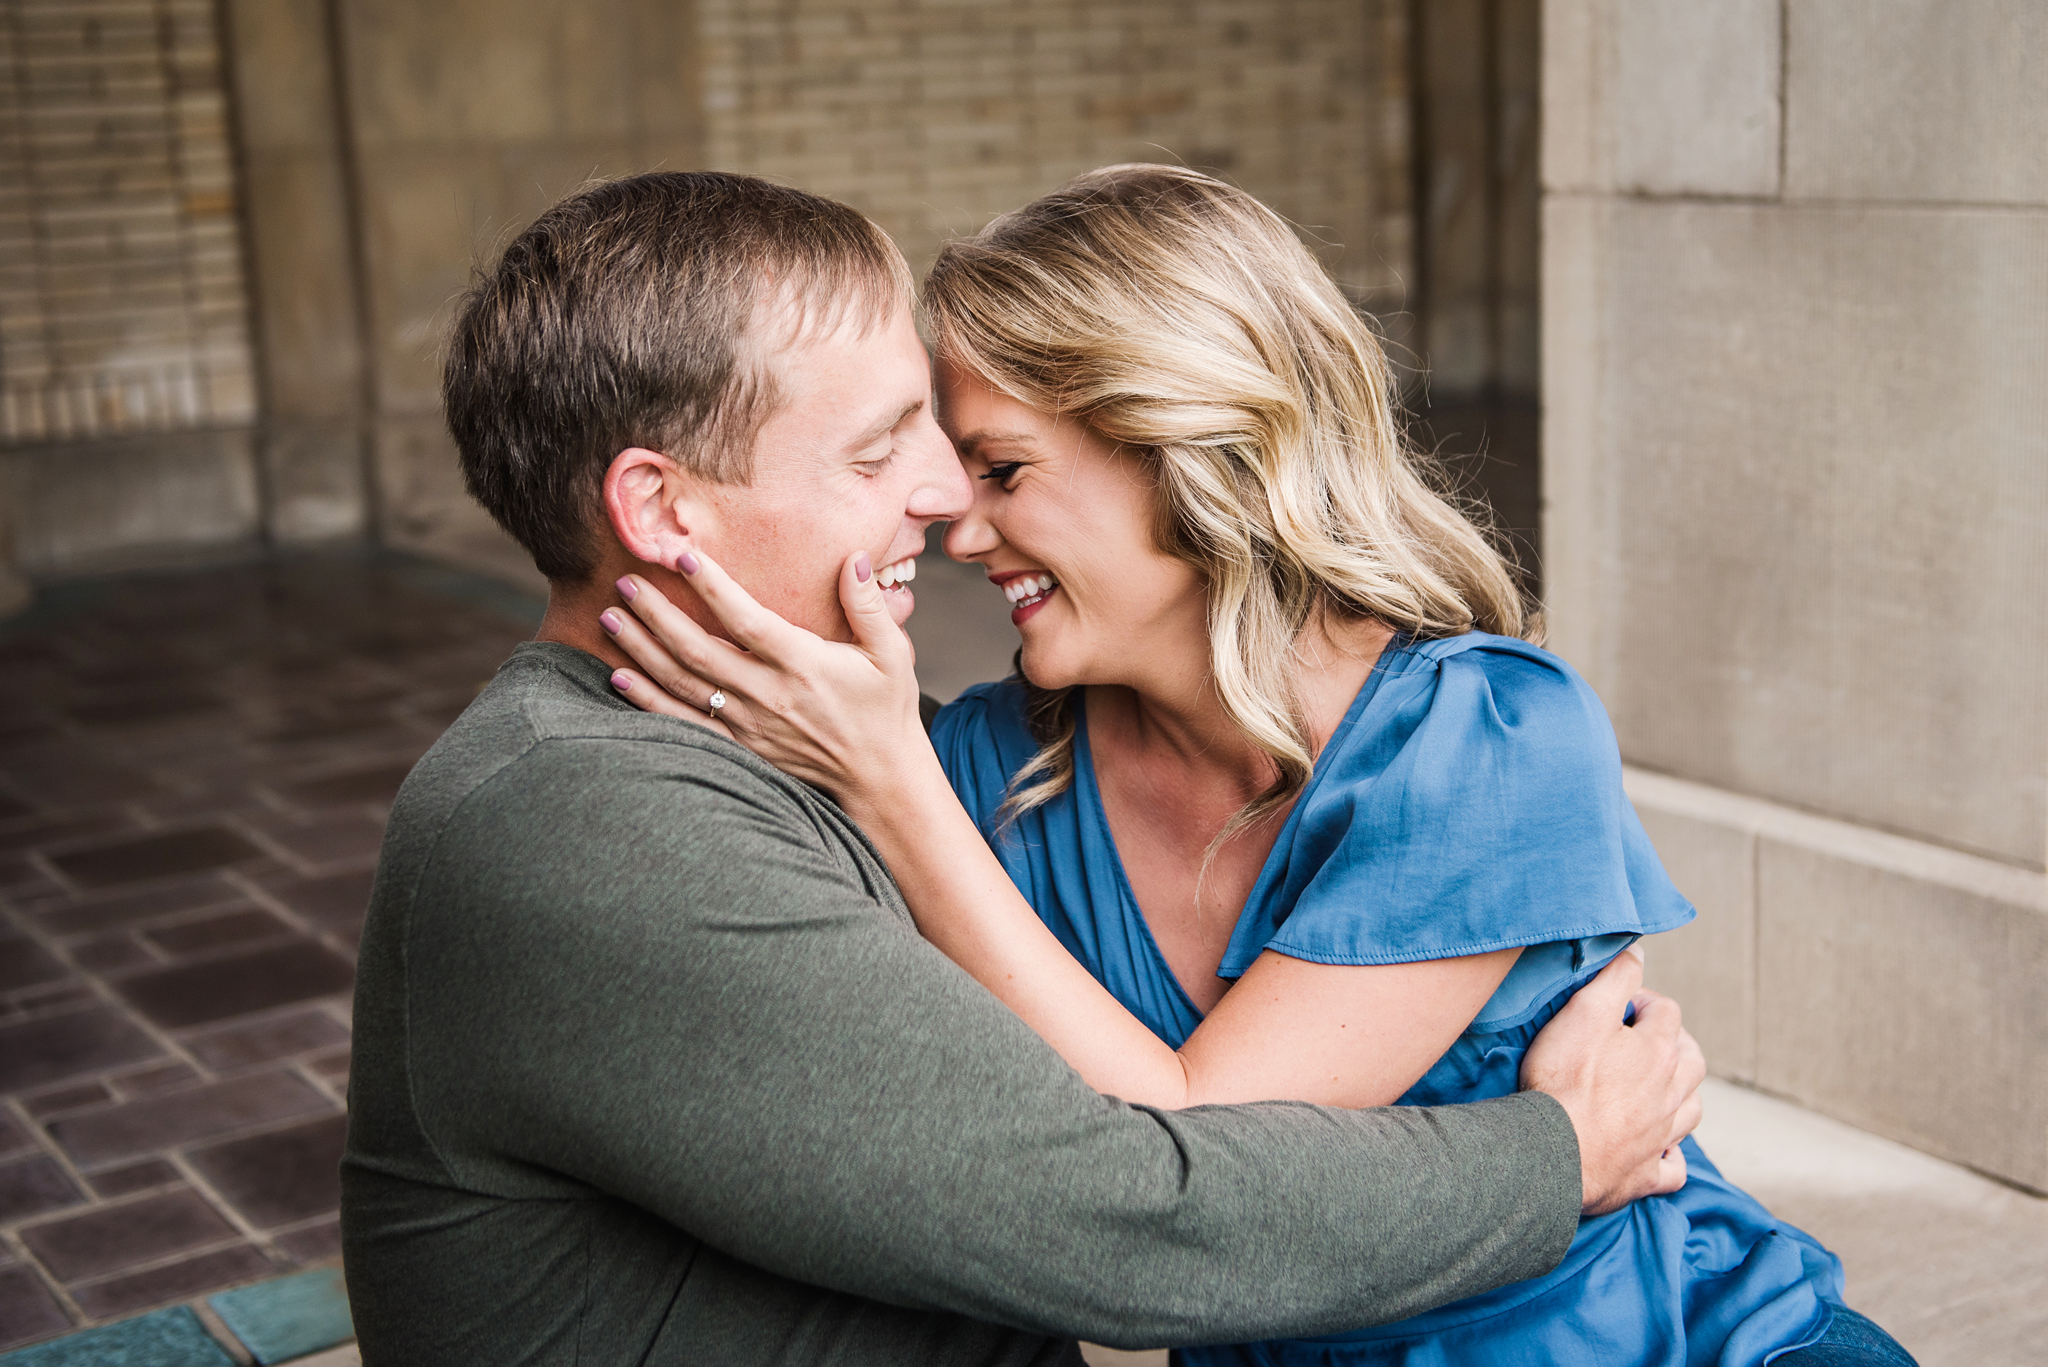 George_Eastman_House_Rochester_Yacht_Club_Rochester_Engagement_Session_JILL_STUDIO_Rochester_NY_Photographer_DSC_7989.jpg